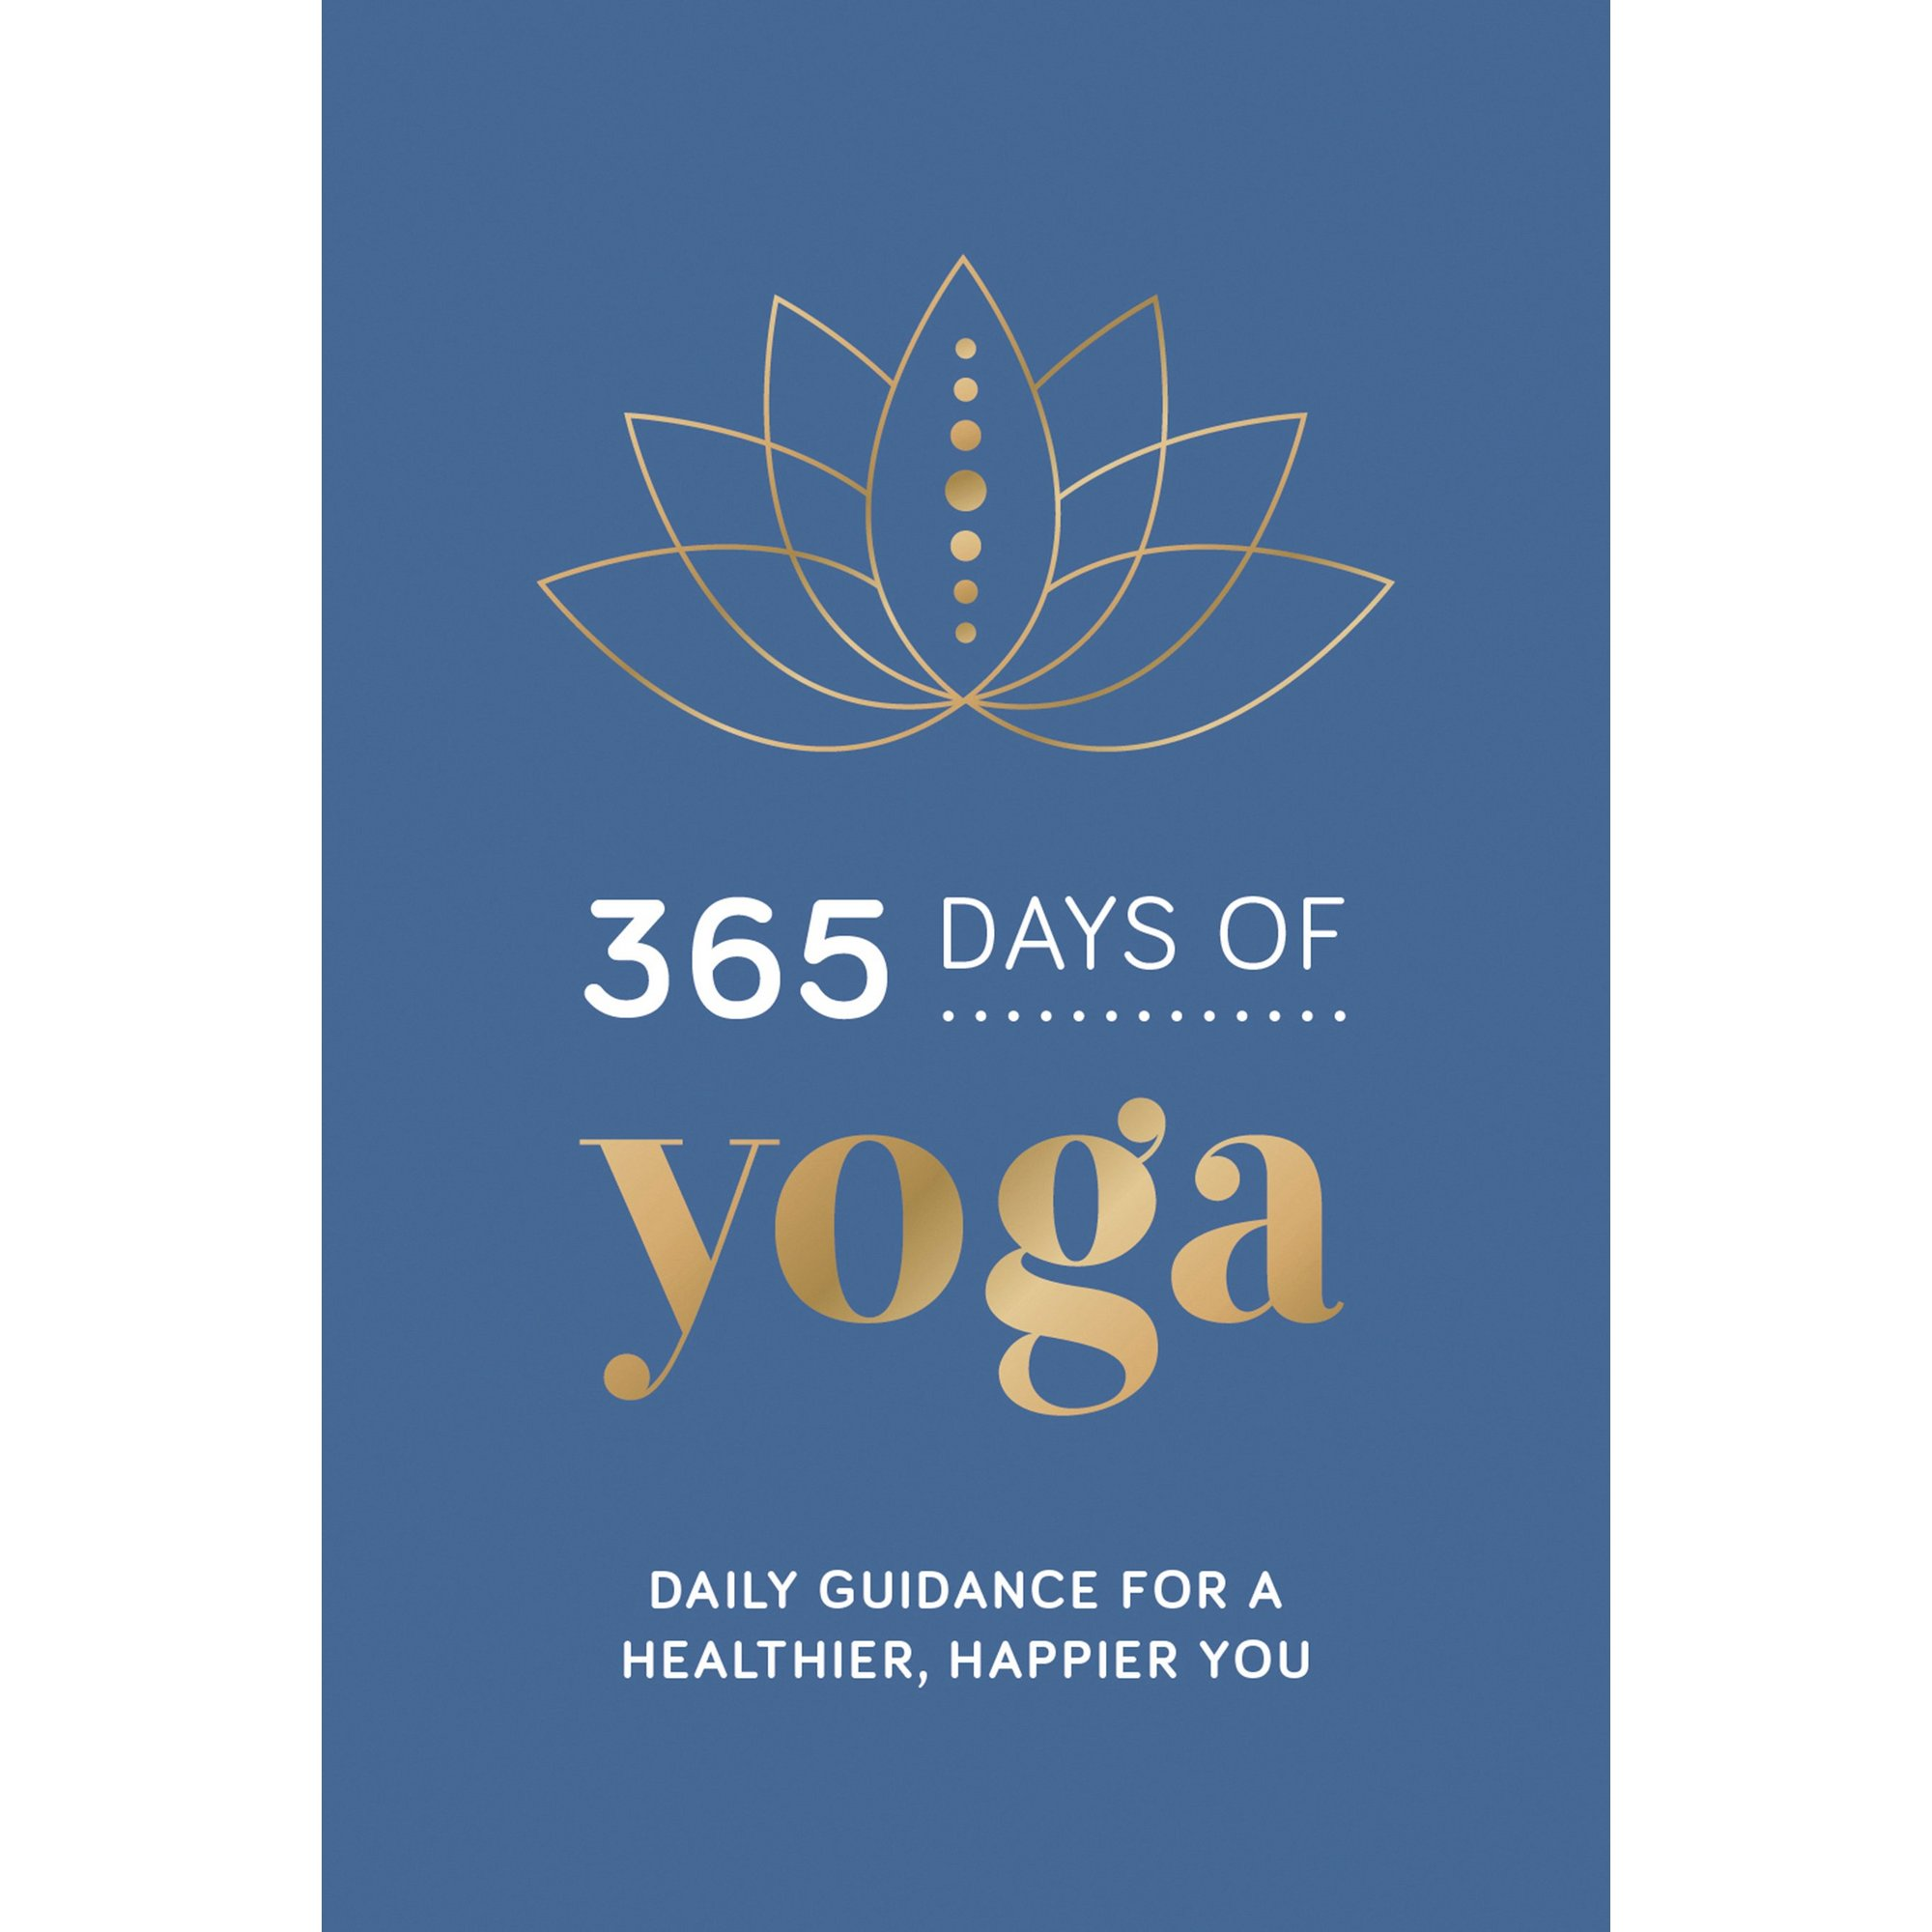 Image of 365 Days of Yoga Book